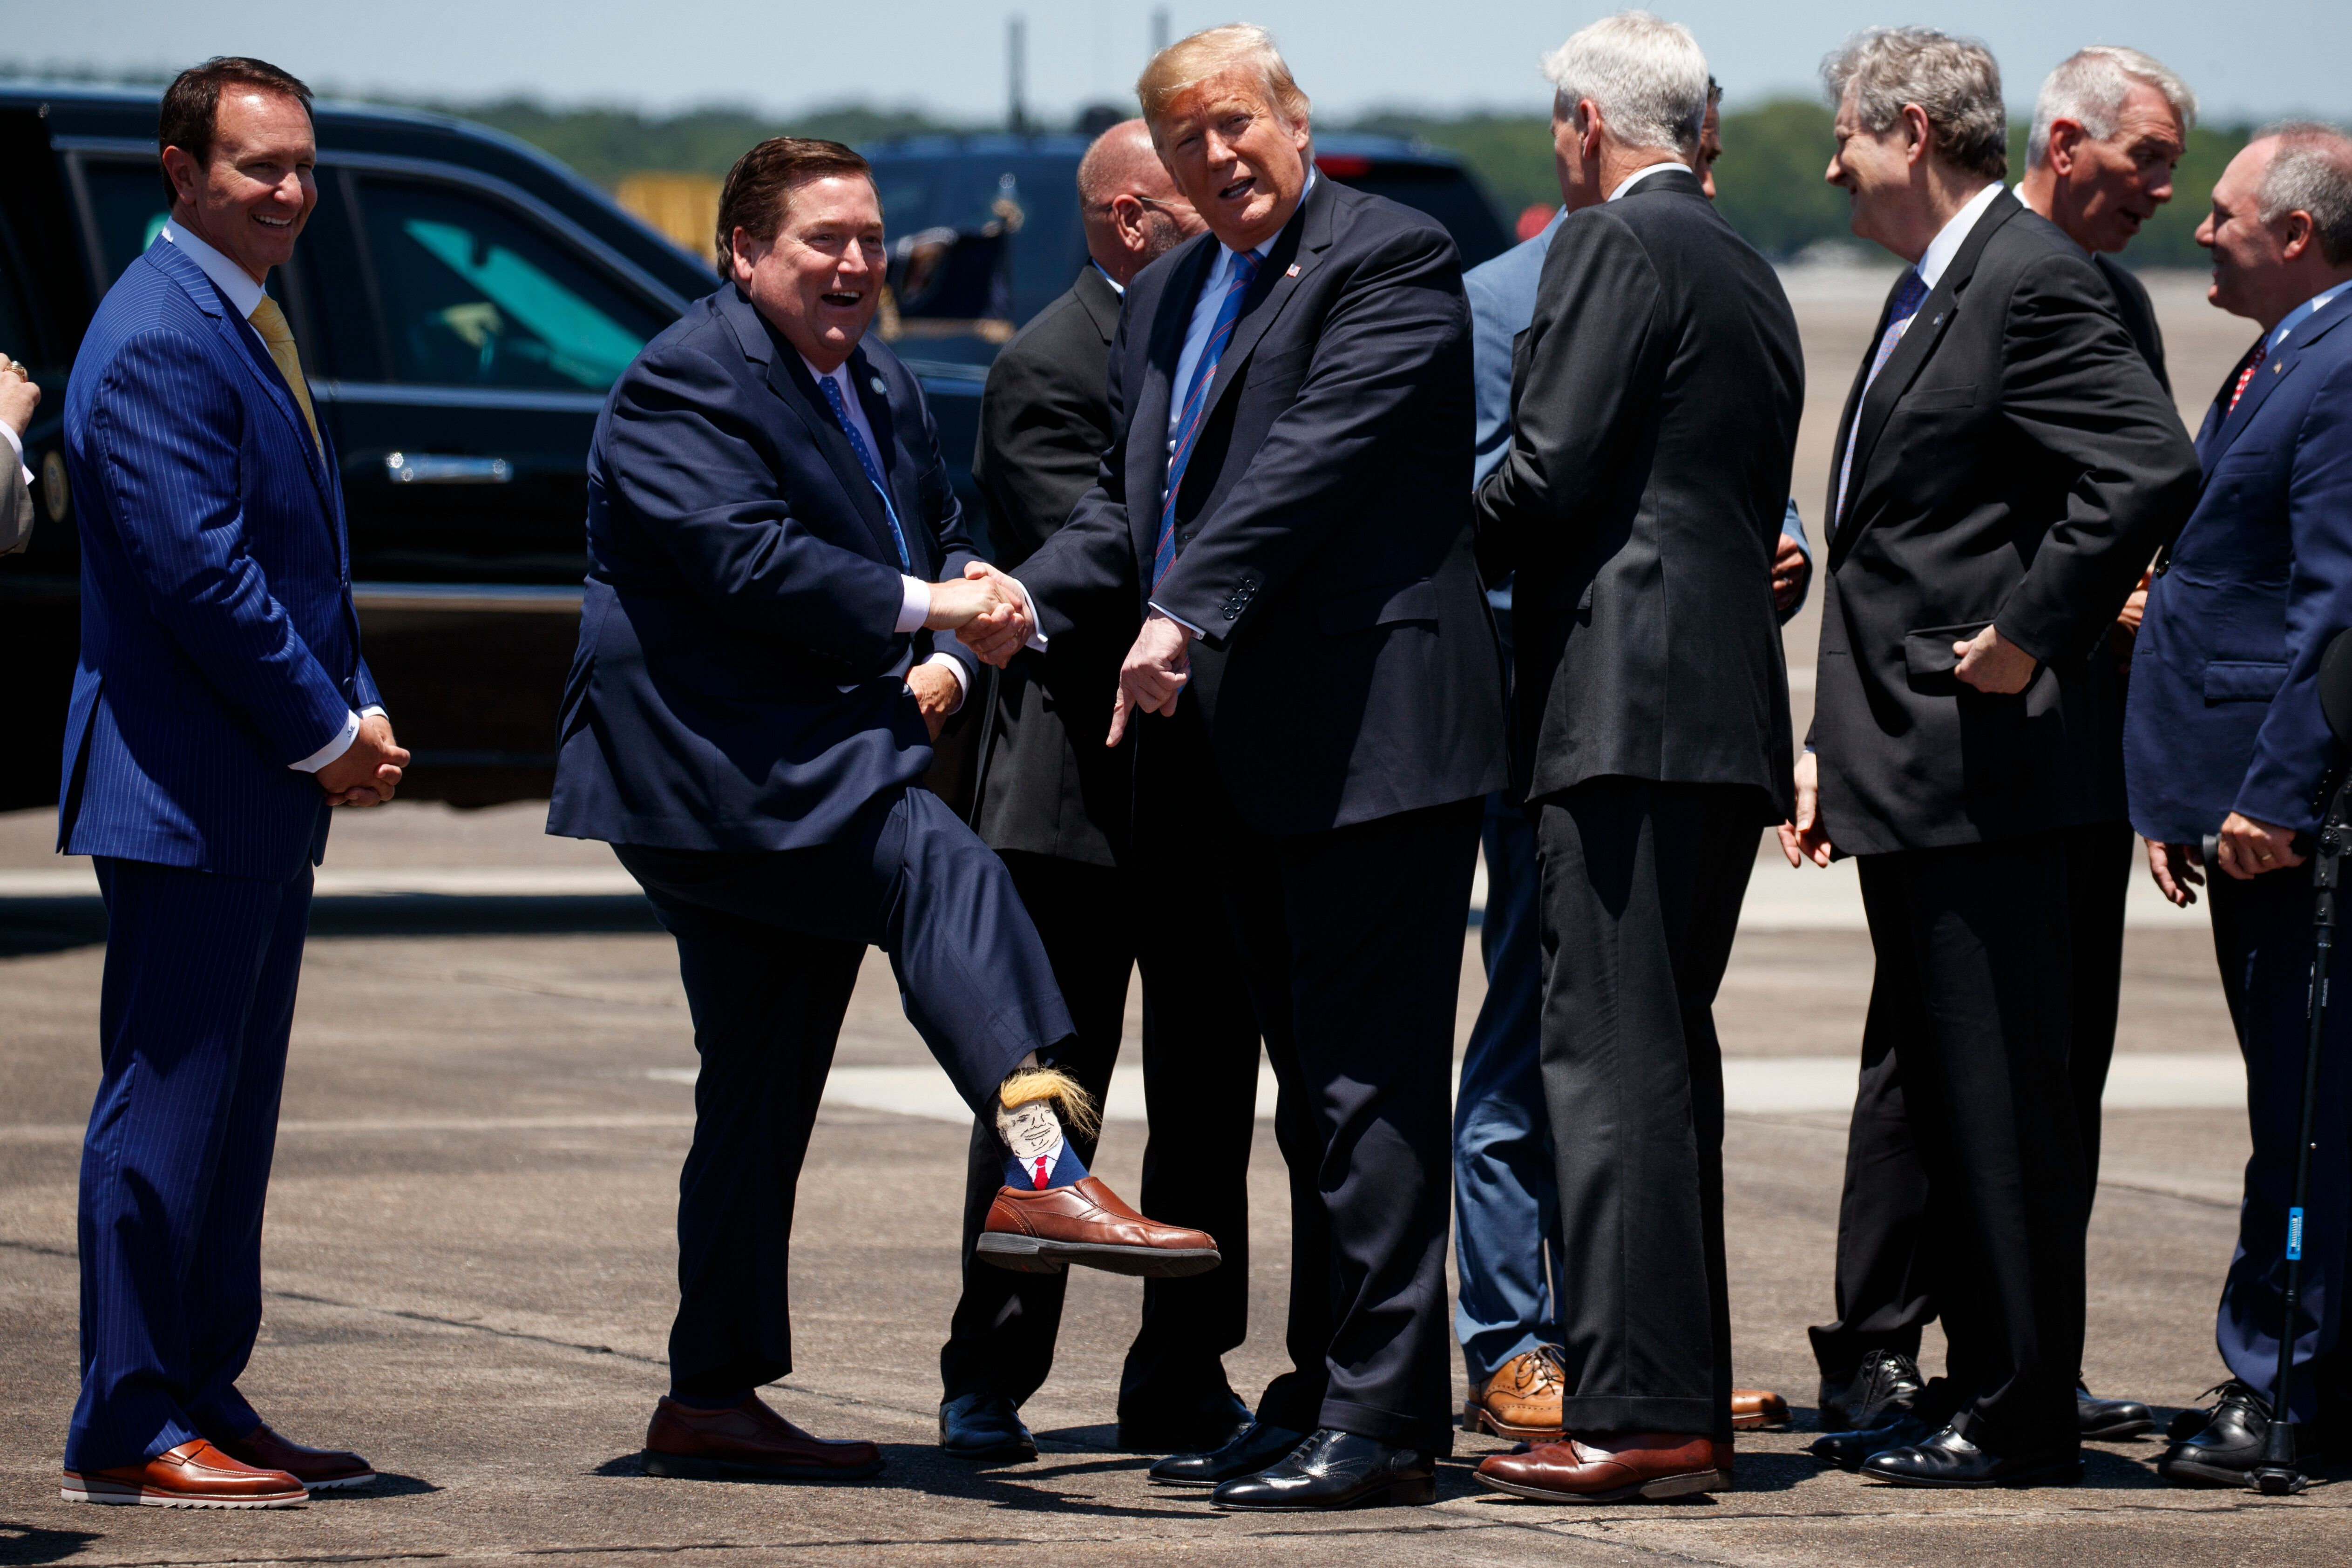 President Donald Trump looks the socks of Lt. Gov. Billy Nungesser, R-La., after arriving at Chennault International Airport, Tuesday, May 14, 2019, in Lake Charles, La. (AP Photo/Evan Vucci)